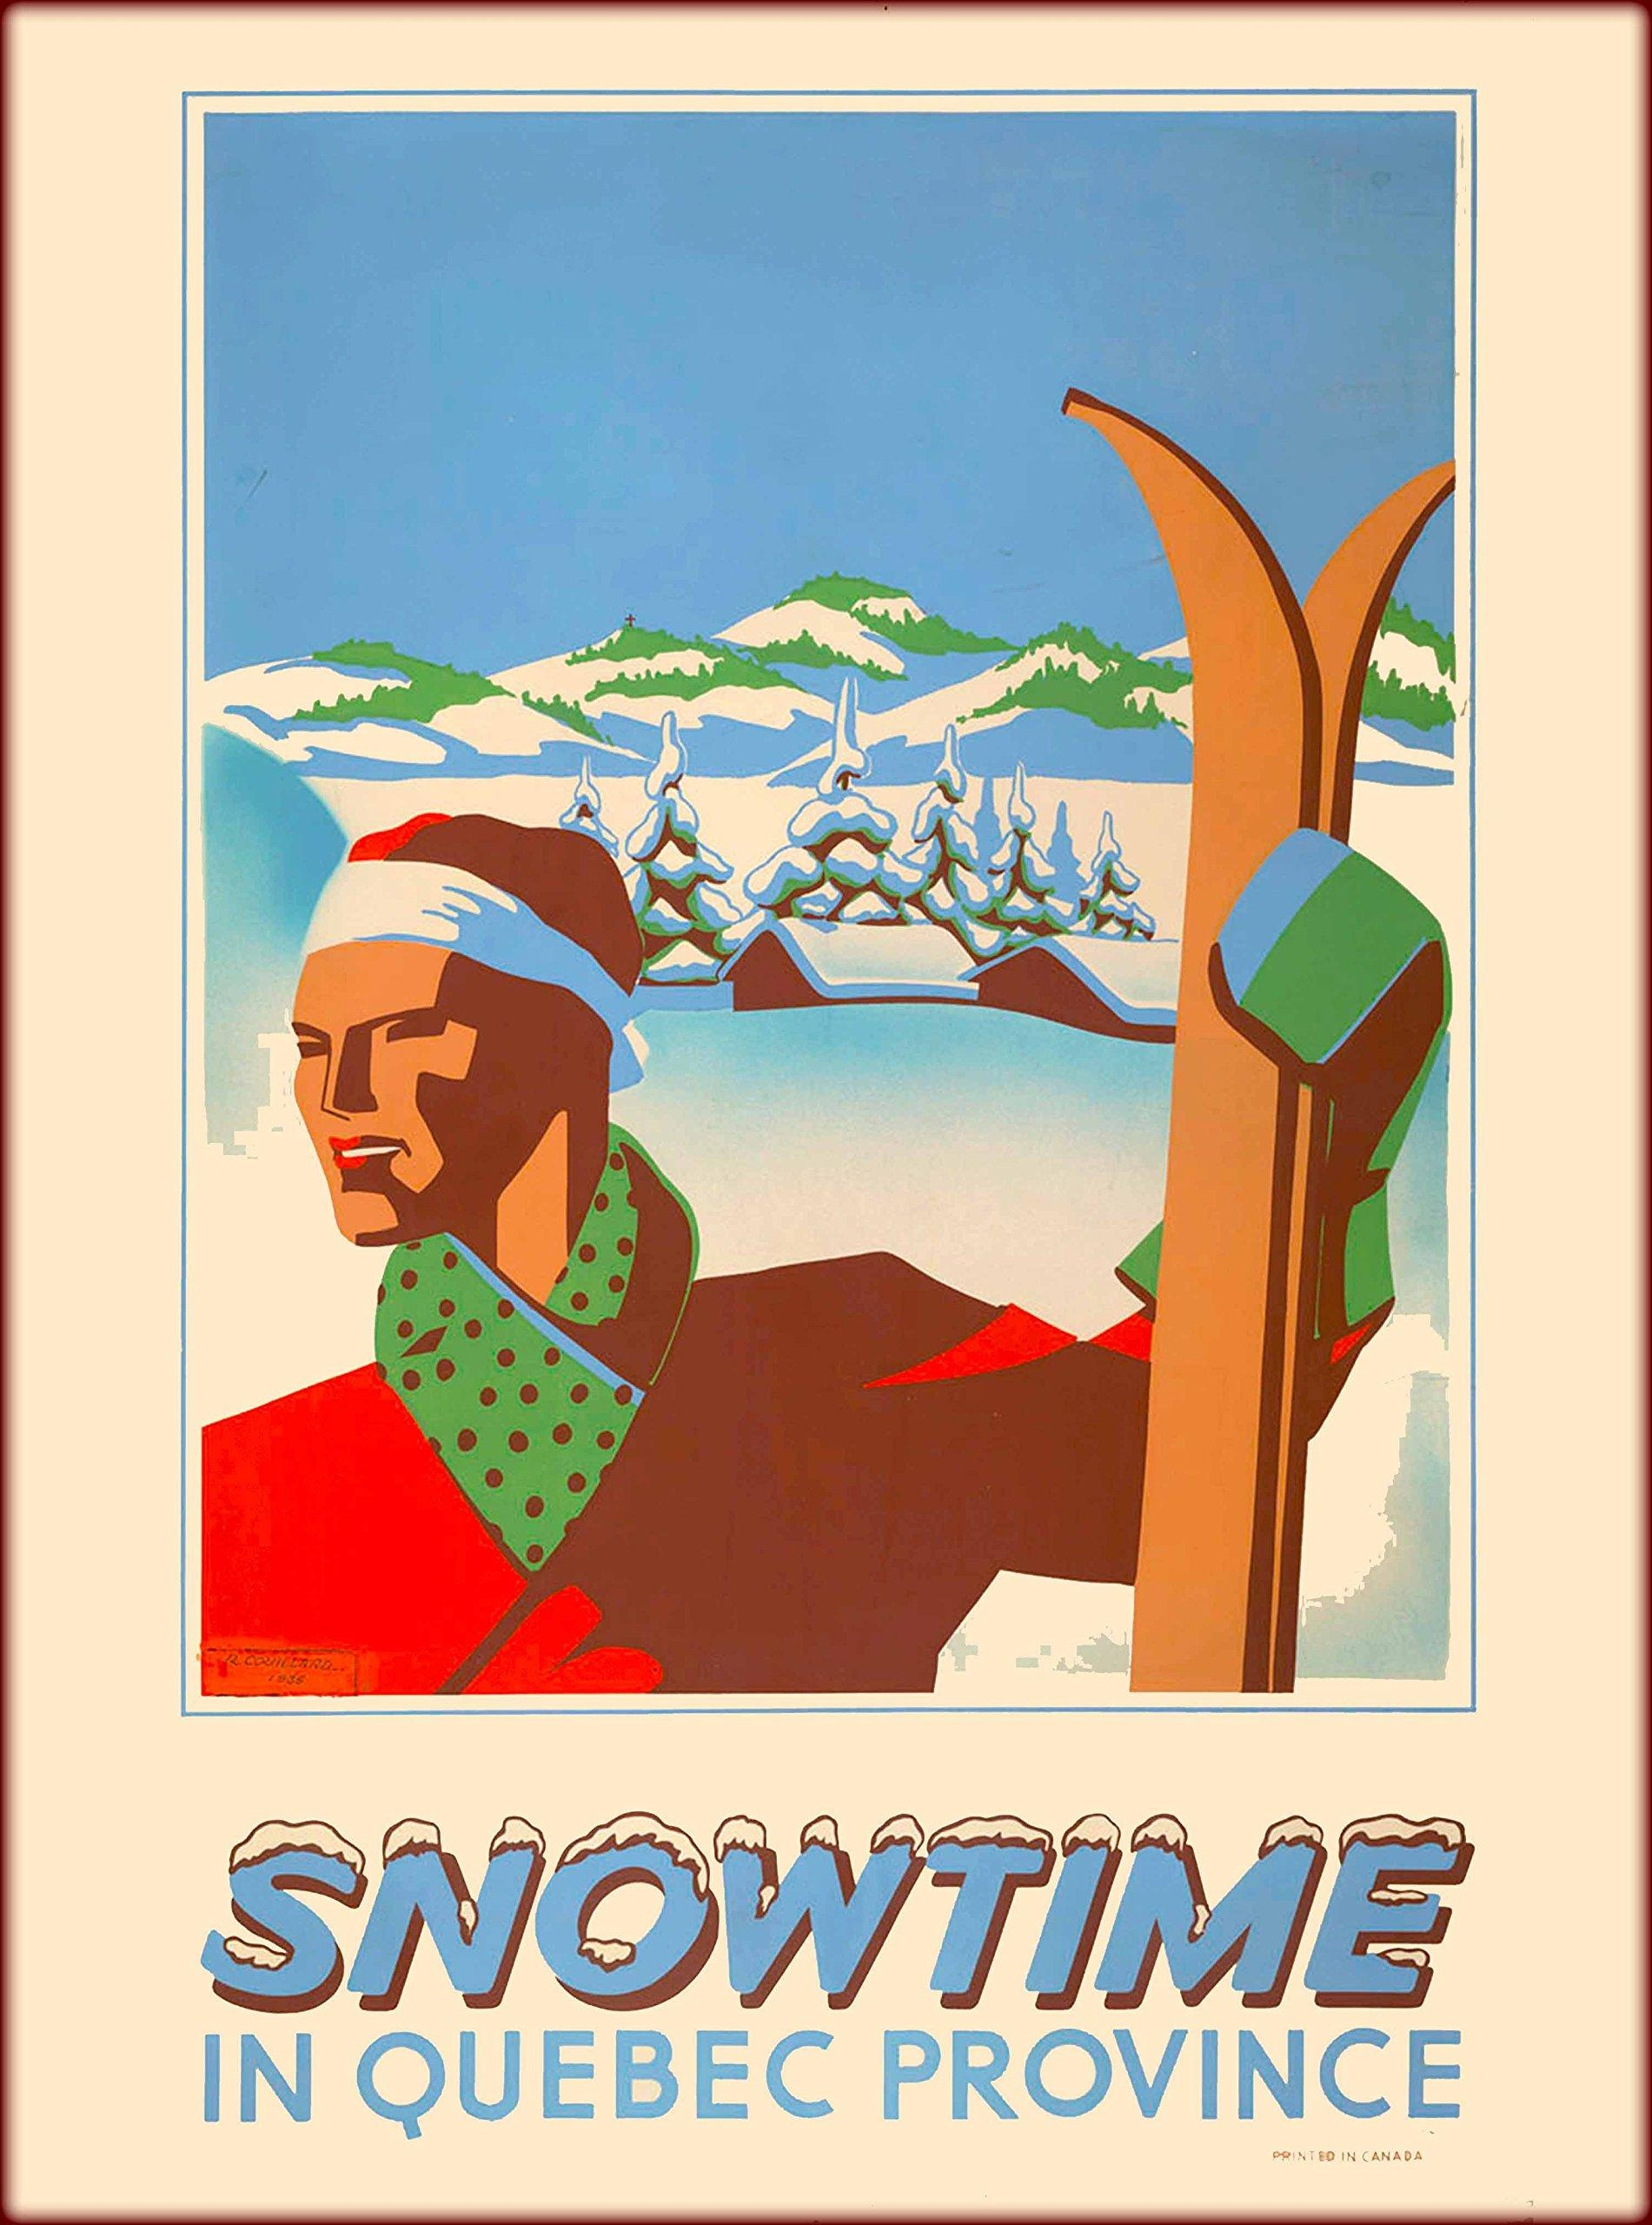 snowtime-in-quebec-provence-invites-you-canada-canadian-vintage-travel-poster